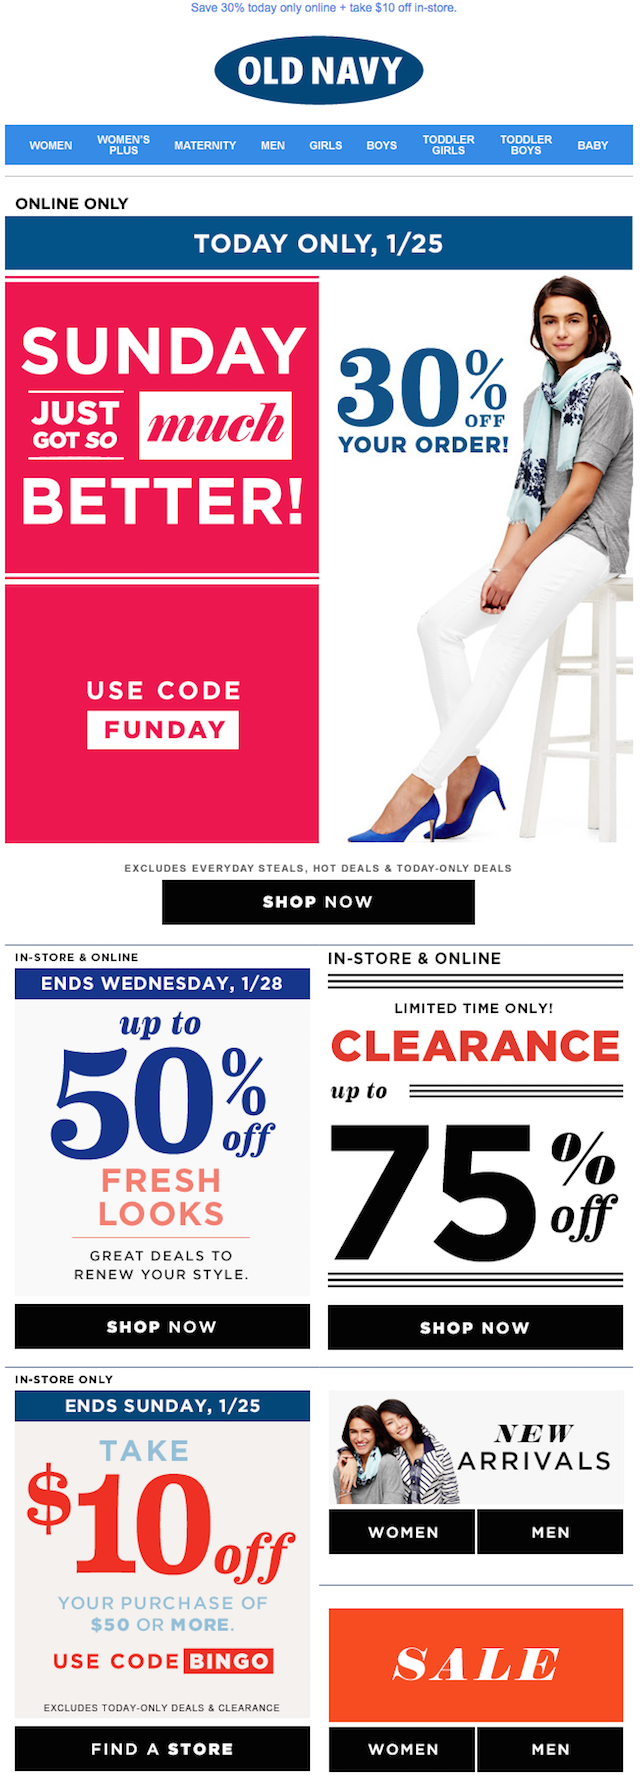 Old Navy discounts